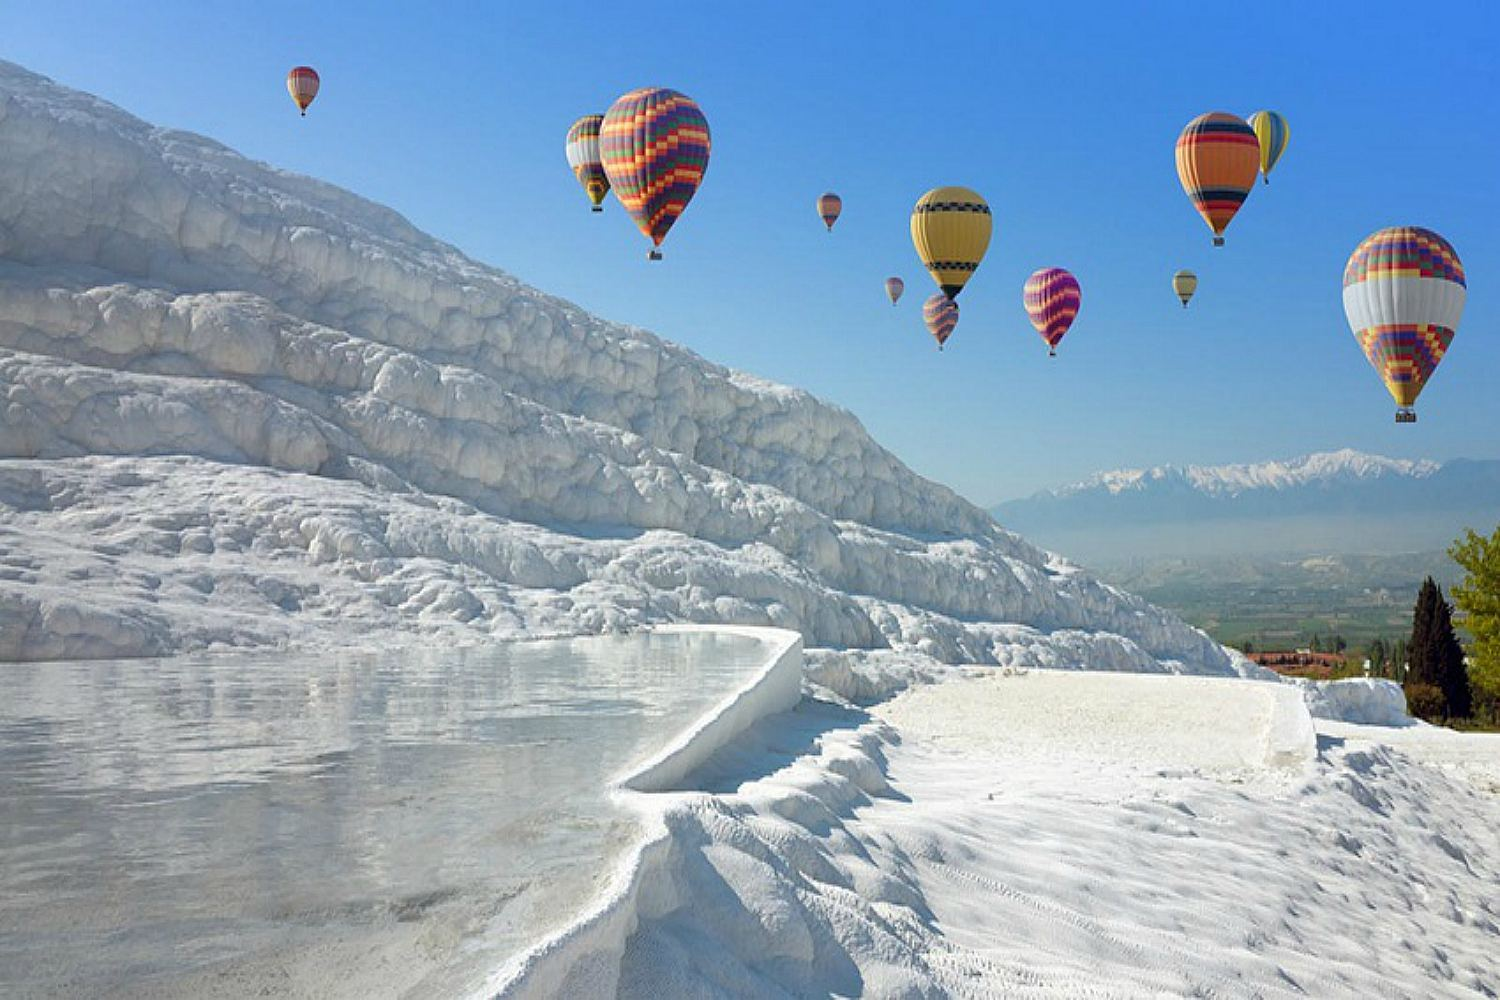 Hierapolis thanh pho linh thieng cua Pamukkale anh 2